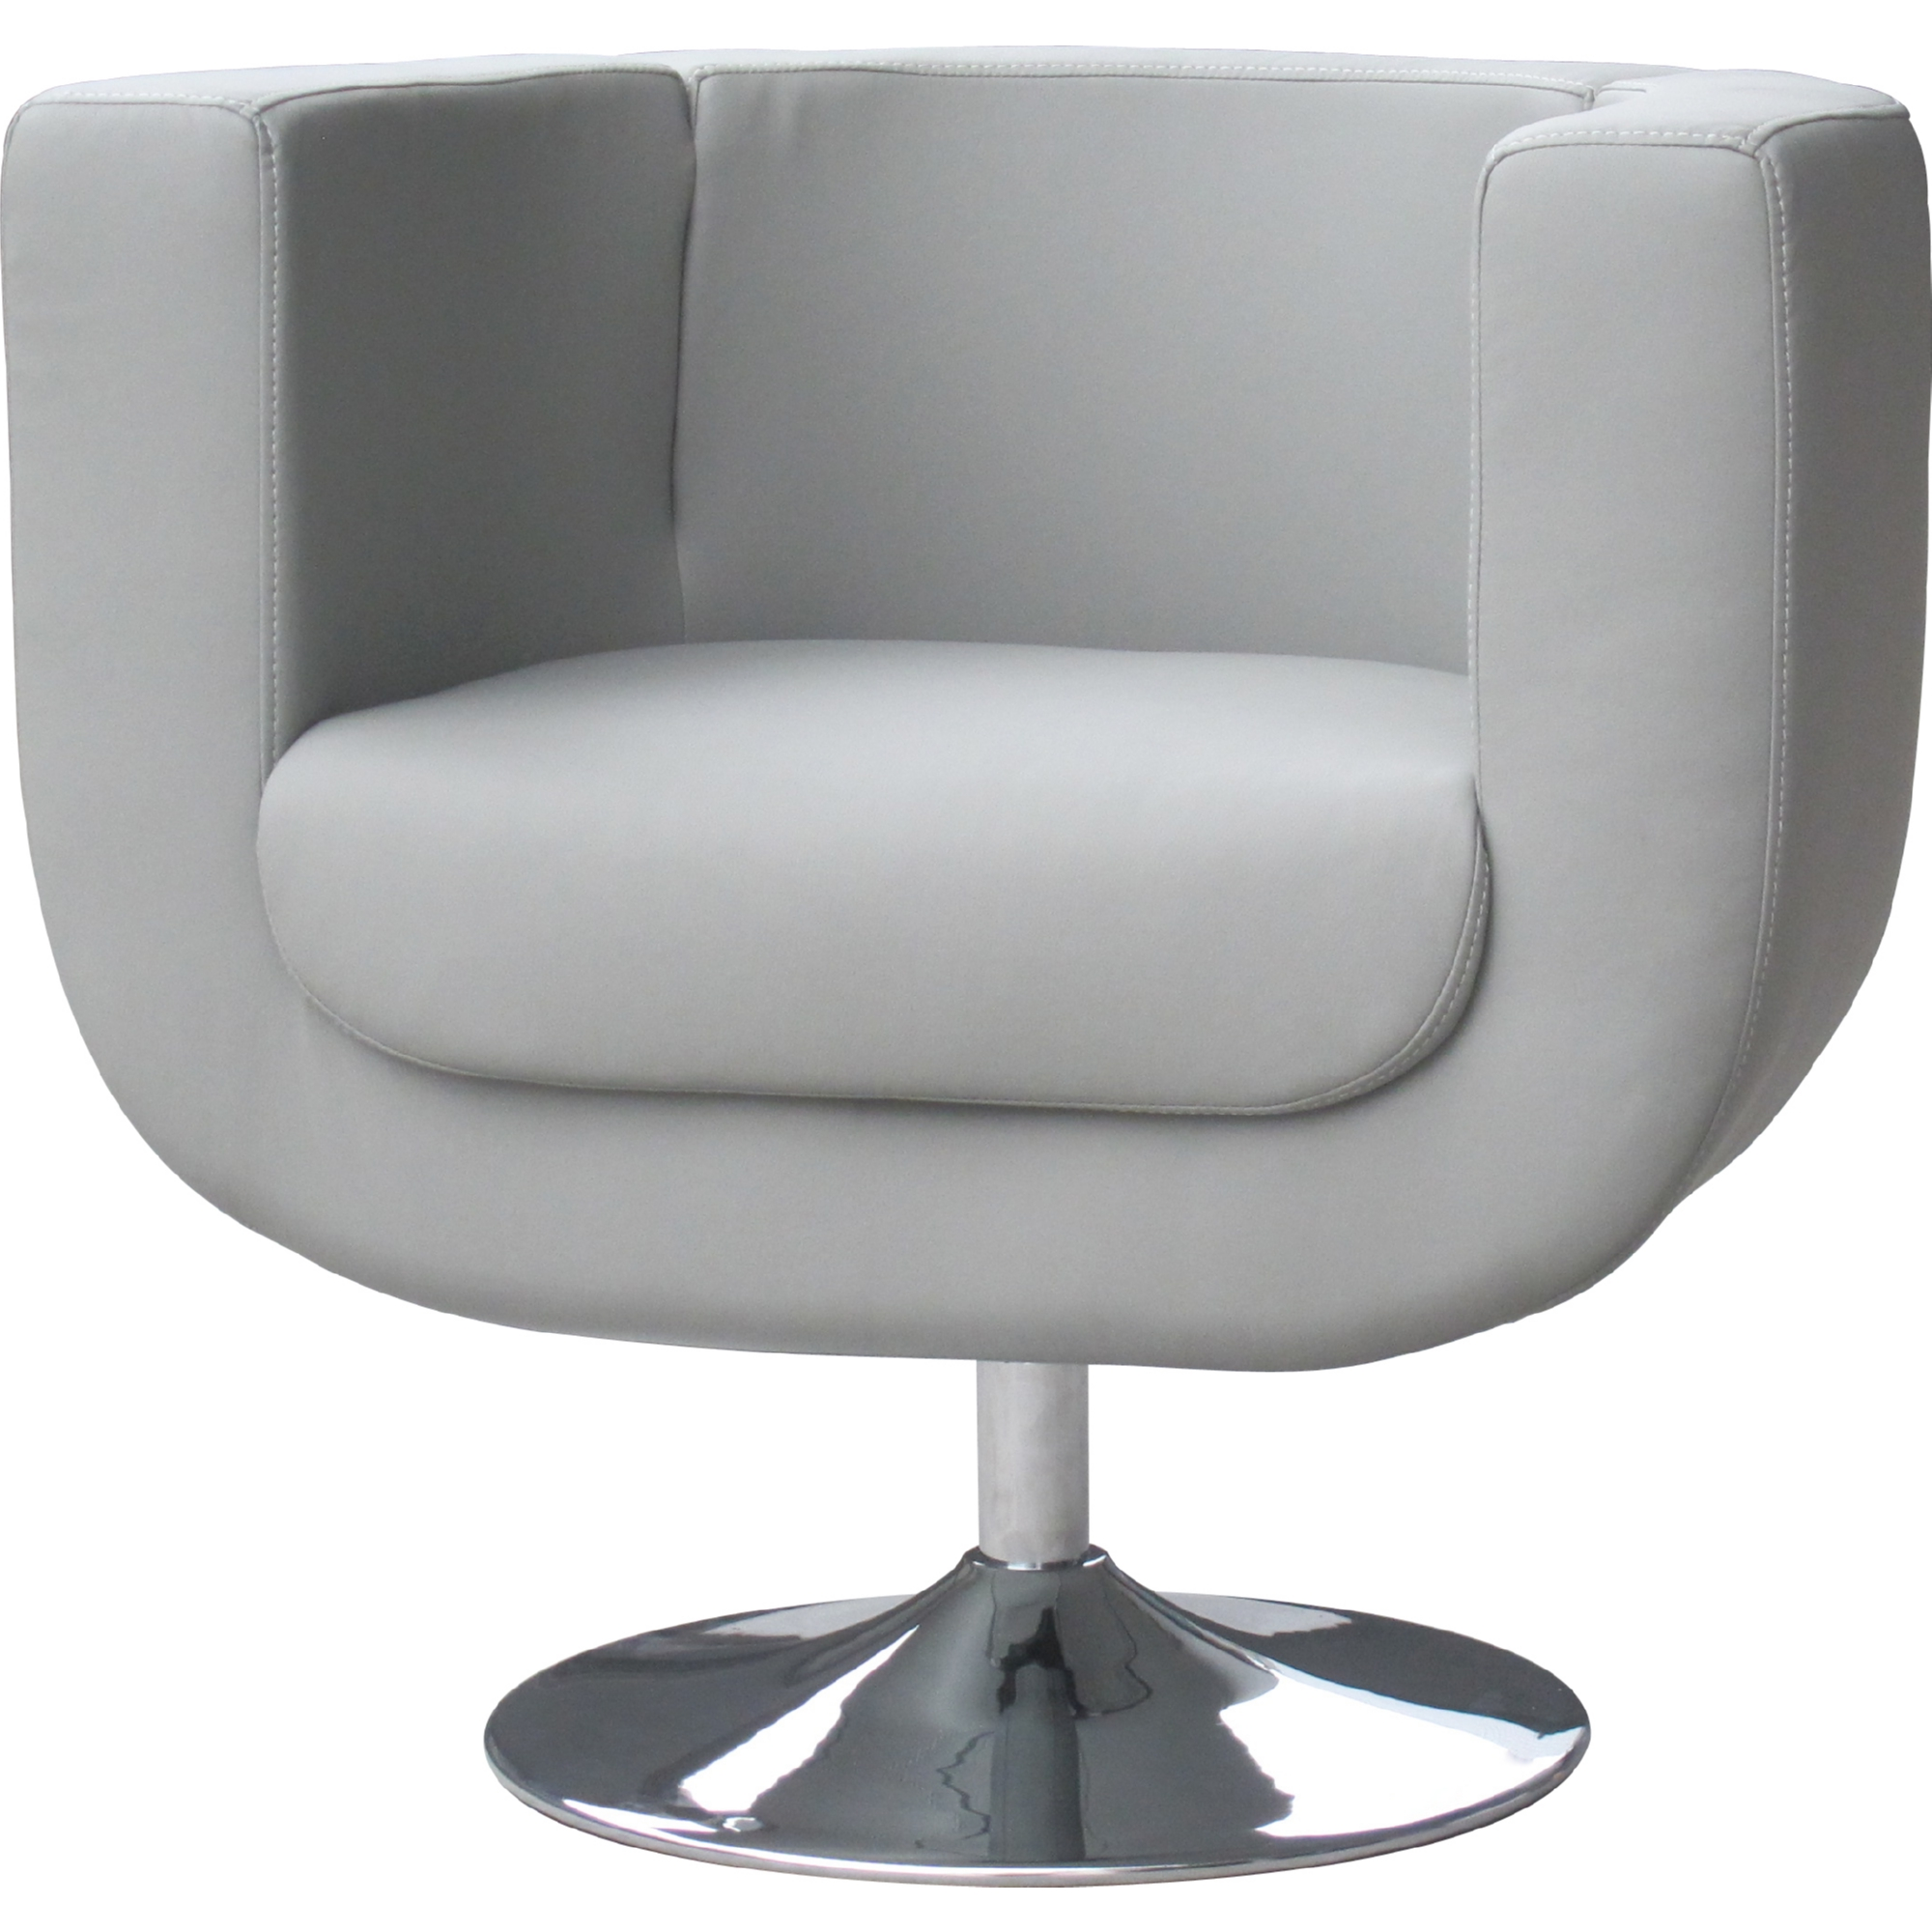 Whiteline Imports CH1017P GRY Bliss Swivel Accent Chair in Grey